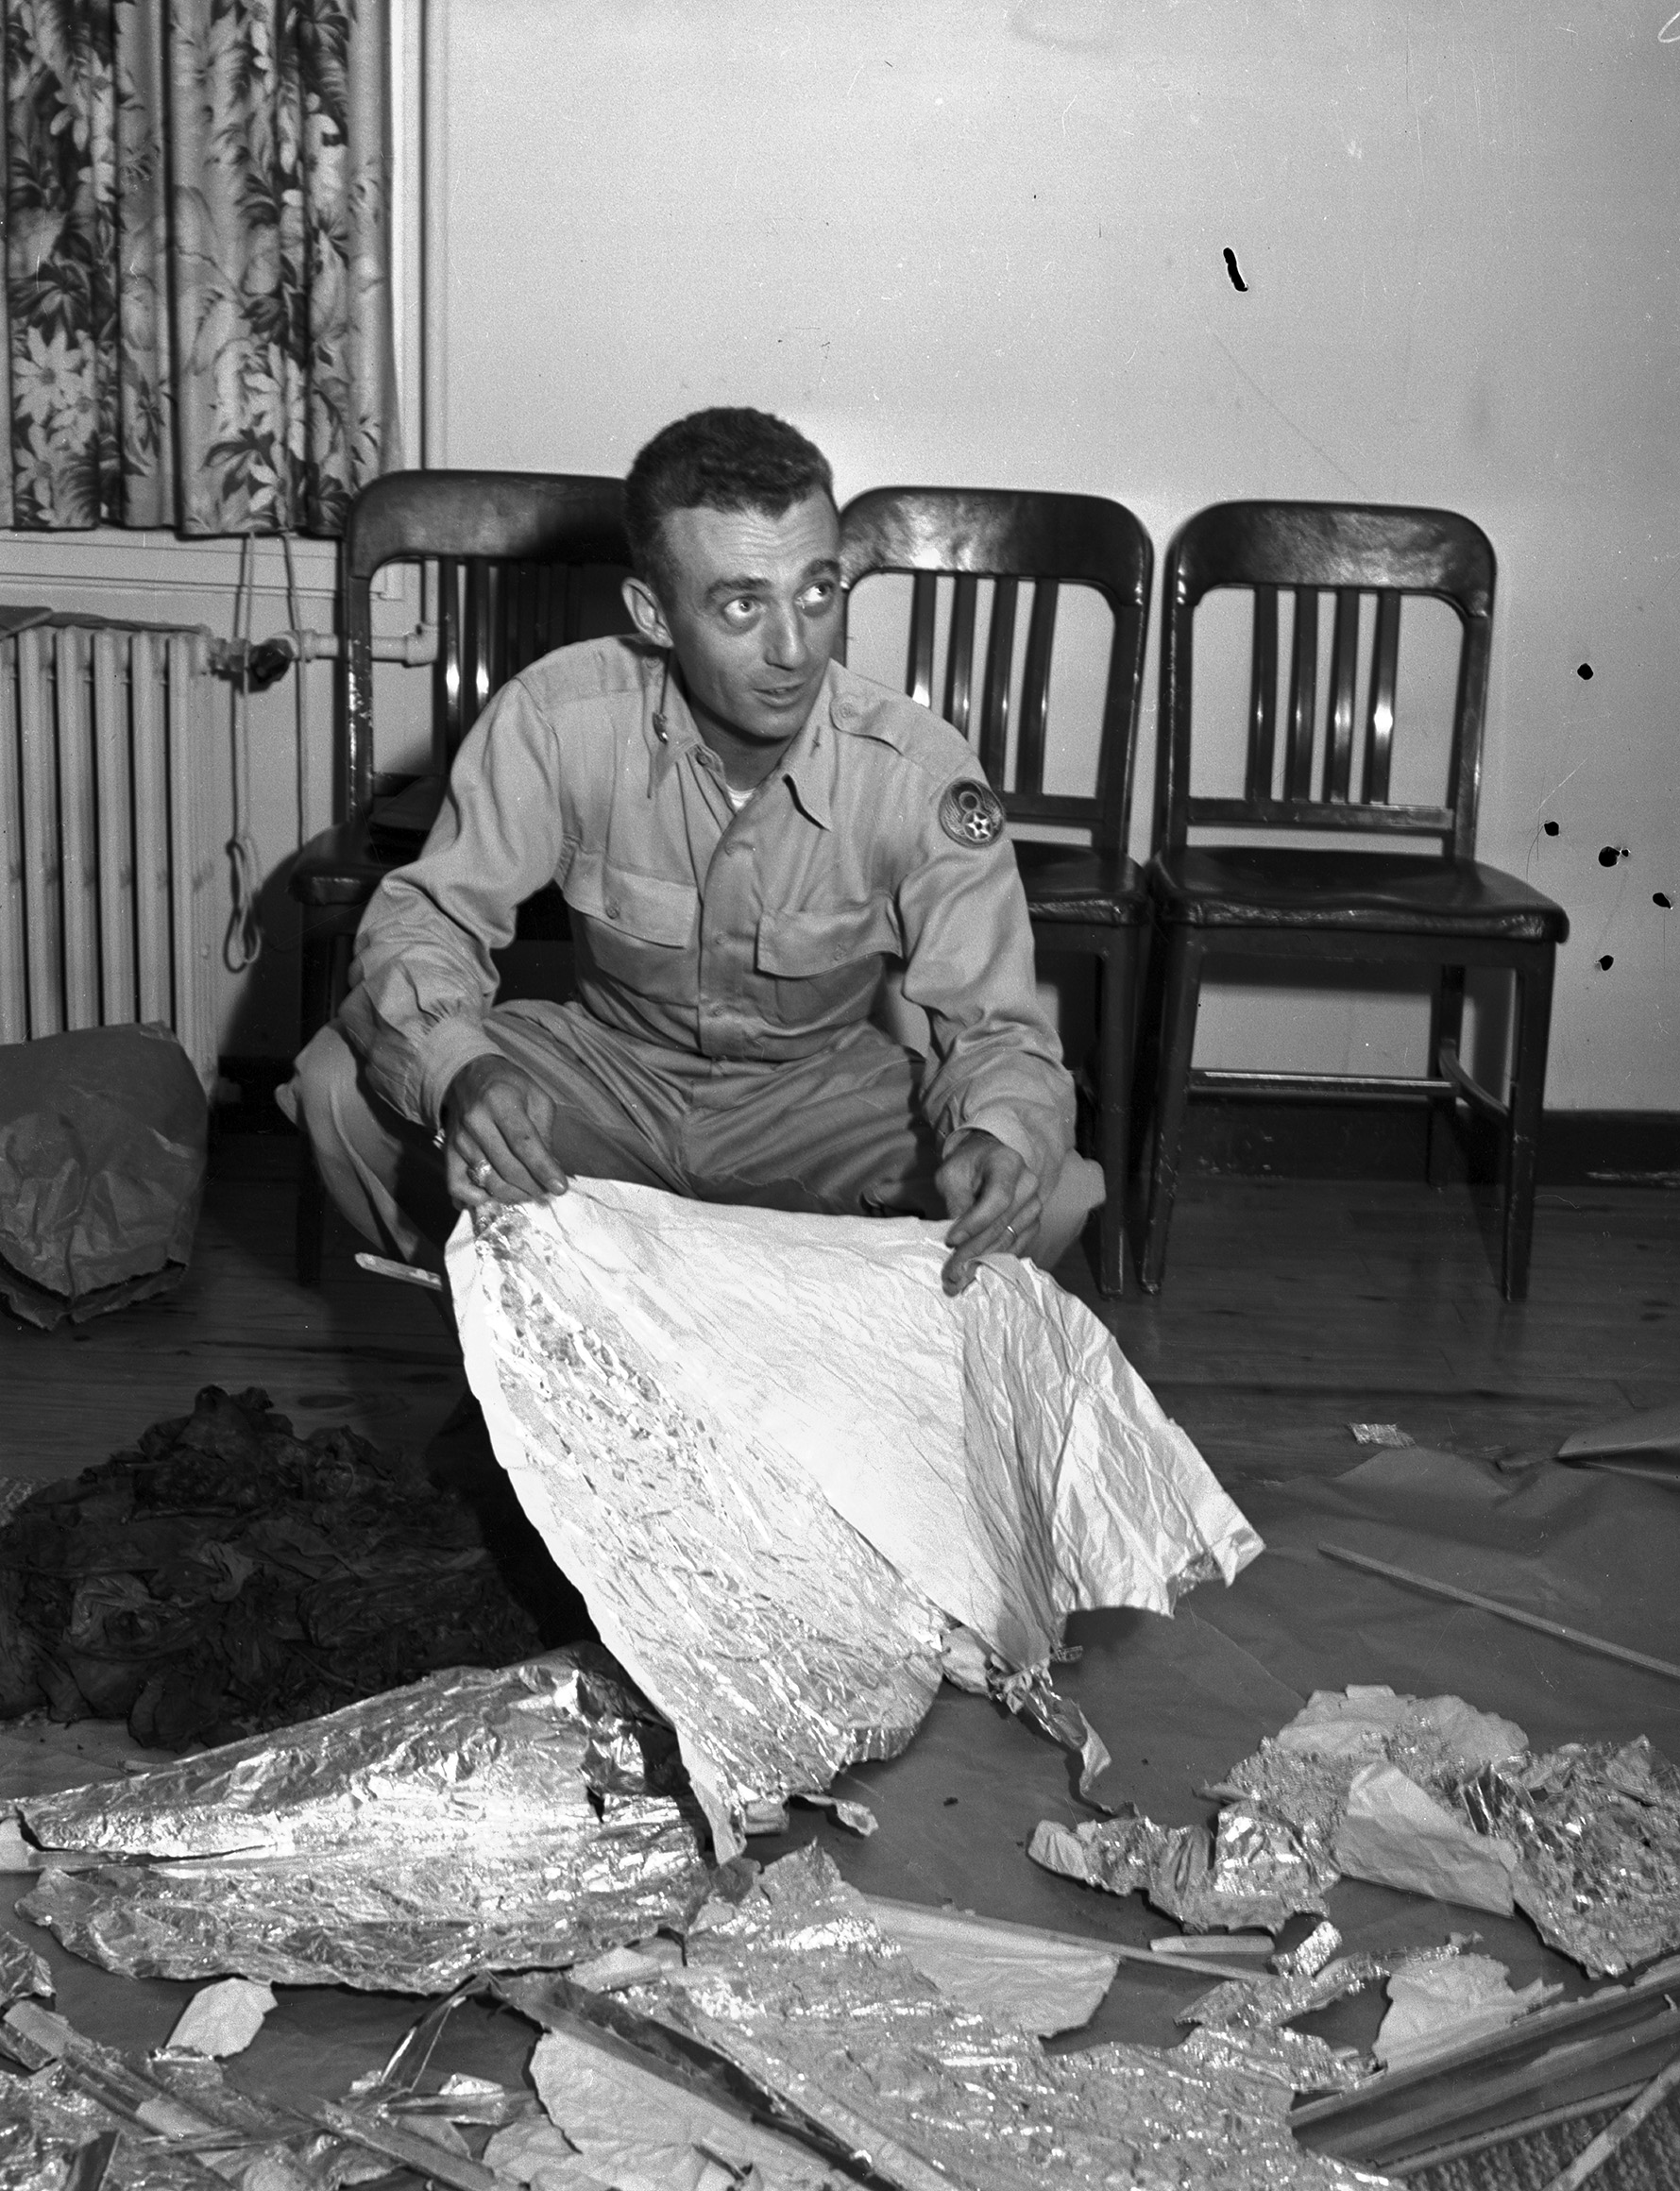 ufo crash at roswell nm 1947 essay A brief history of ufos 1947 roswell, nm mexico flying saucer crash the roswell ufo crash by kal k korff (debunks roswell crash.